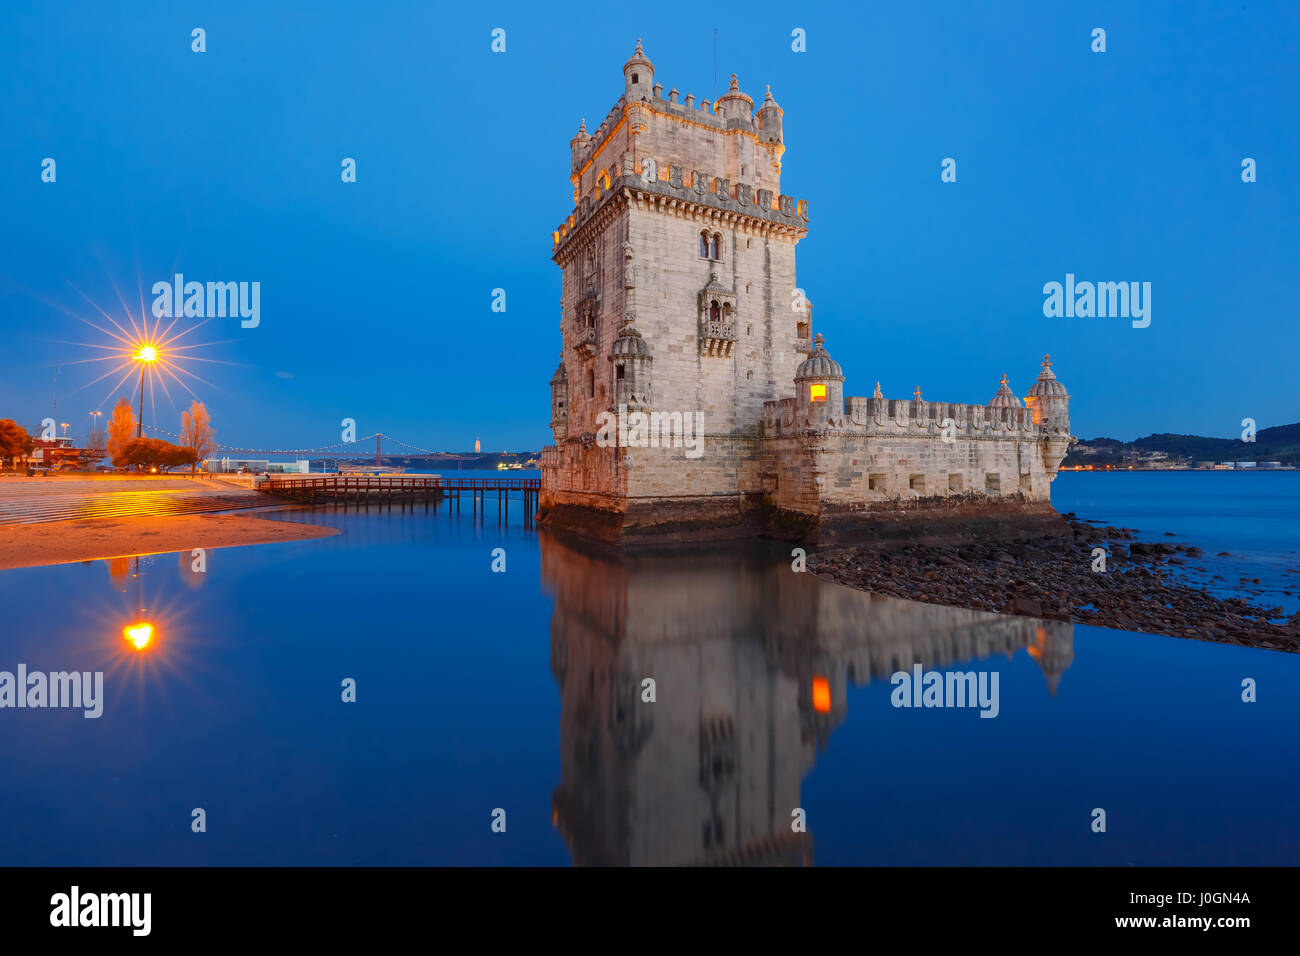 Belem Tower or Tower of St Vincent on the bank of the Tagus River during evening blue hour, Lisbon, Portugal Stock Photo